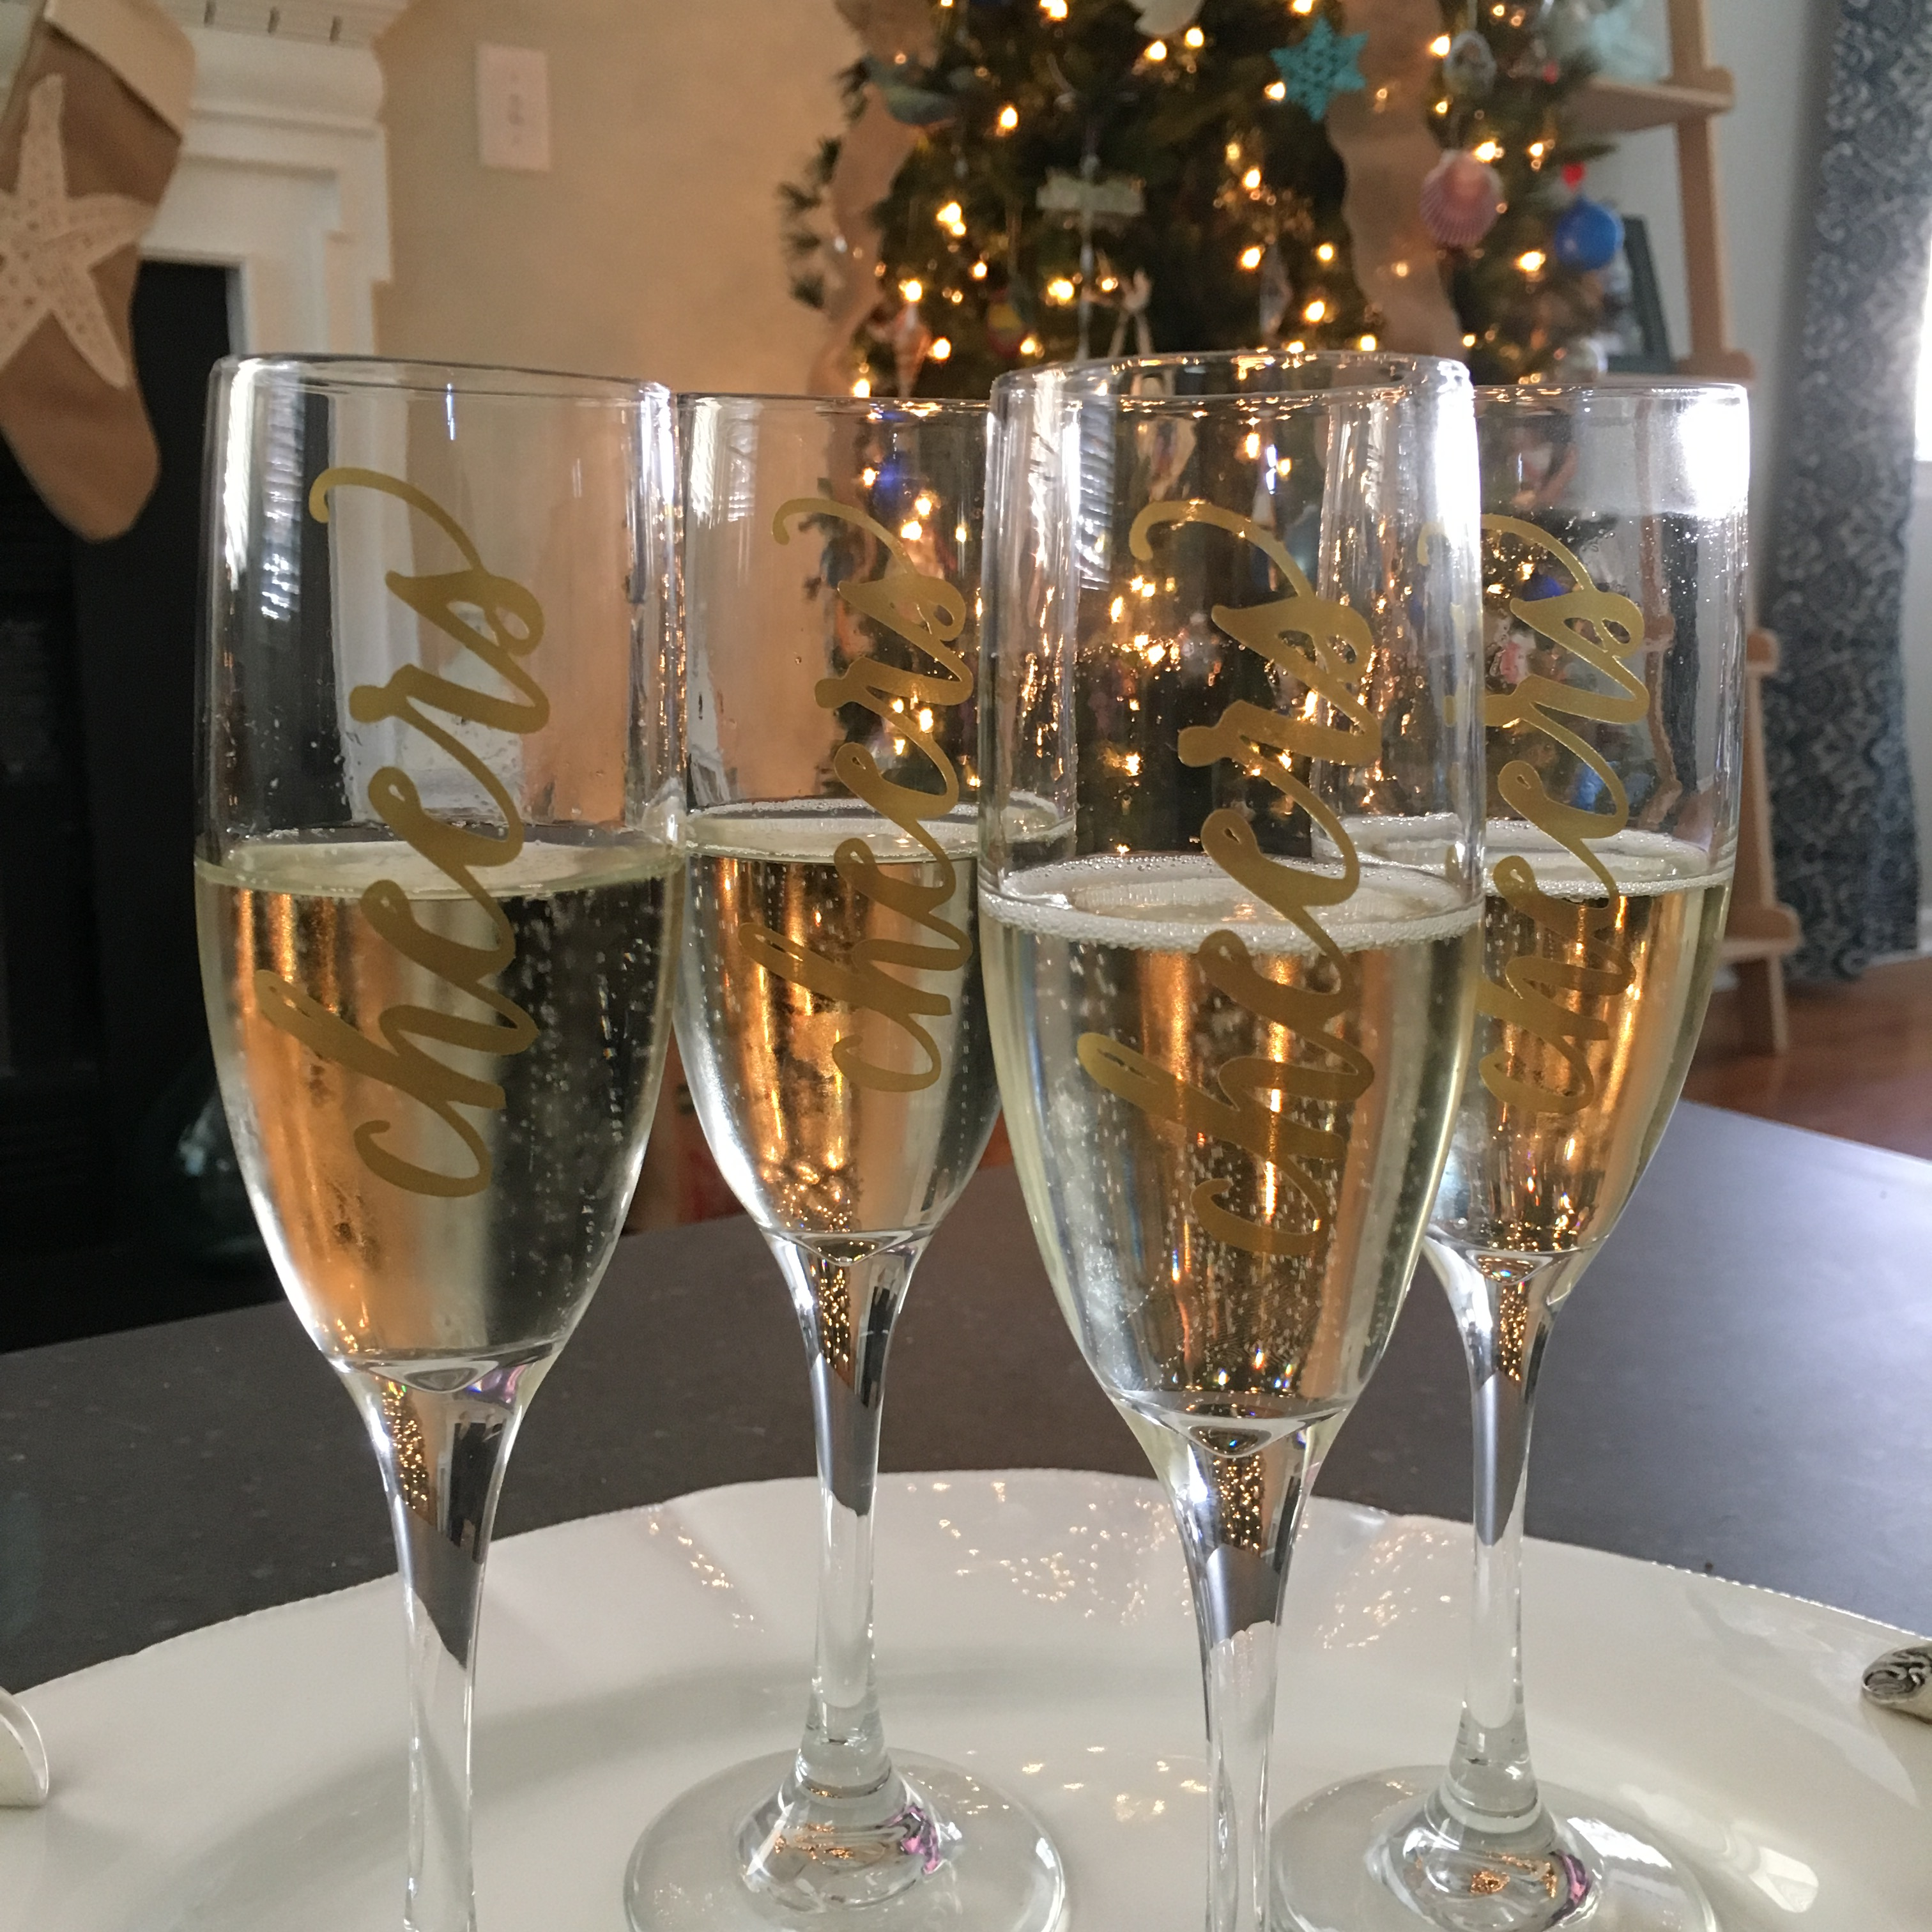 Diy cheers glasses for nye with cricut